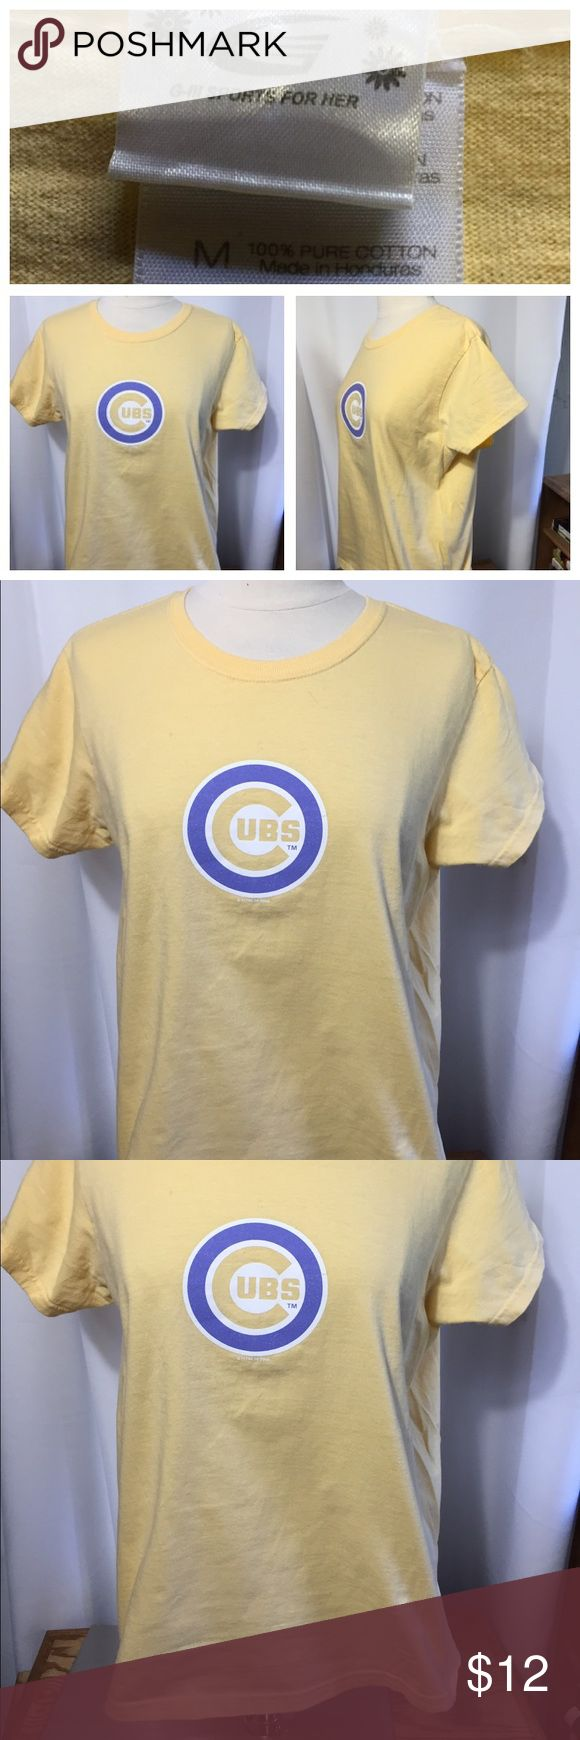 Design your own t shirt chicago - Chicago Cubs Curl Banks T Shirt Size M Excellent Condition G Iii Tops Tees